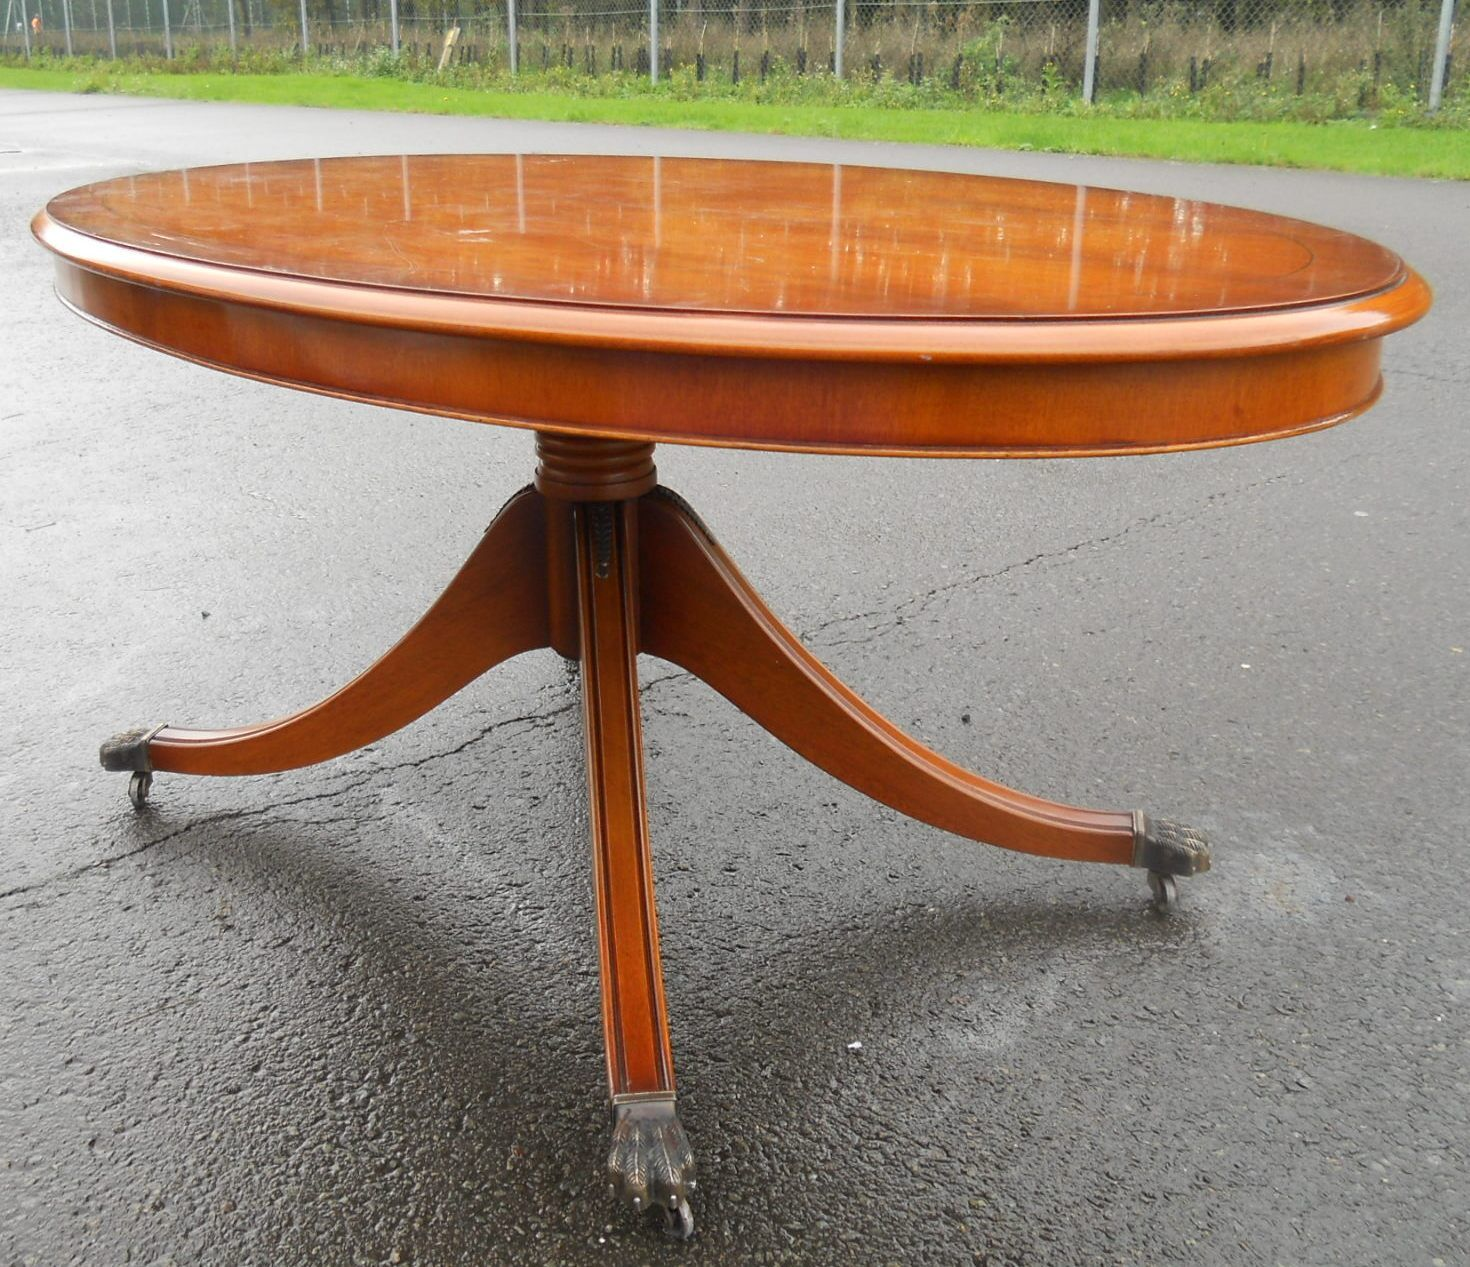 Large Oval Wood Coffee Table: Large Yew Oval Pedestal Coffee Table By Bradley